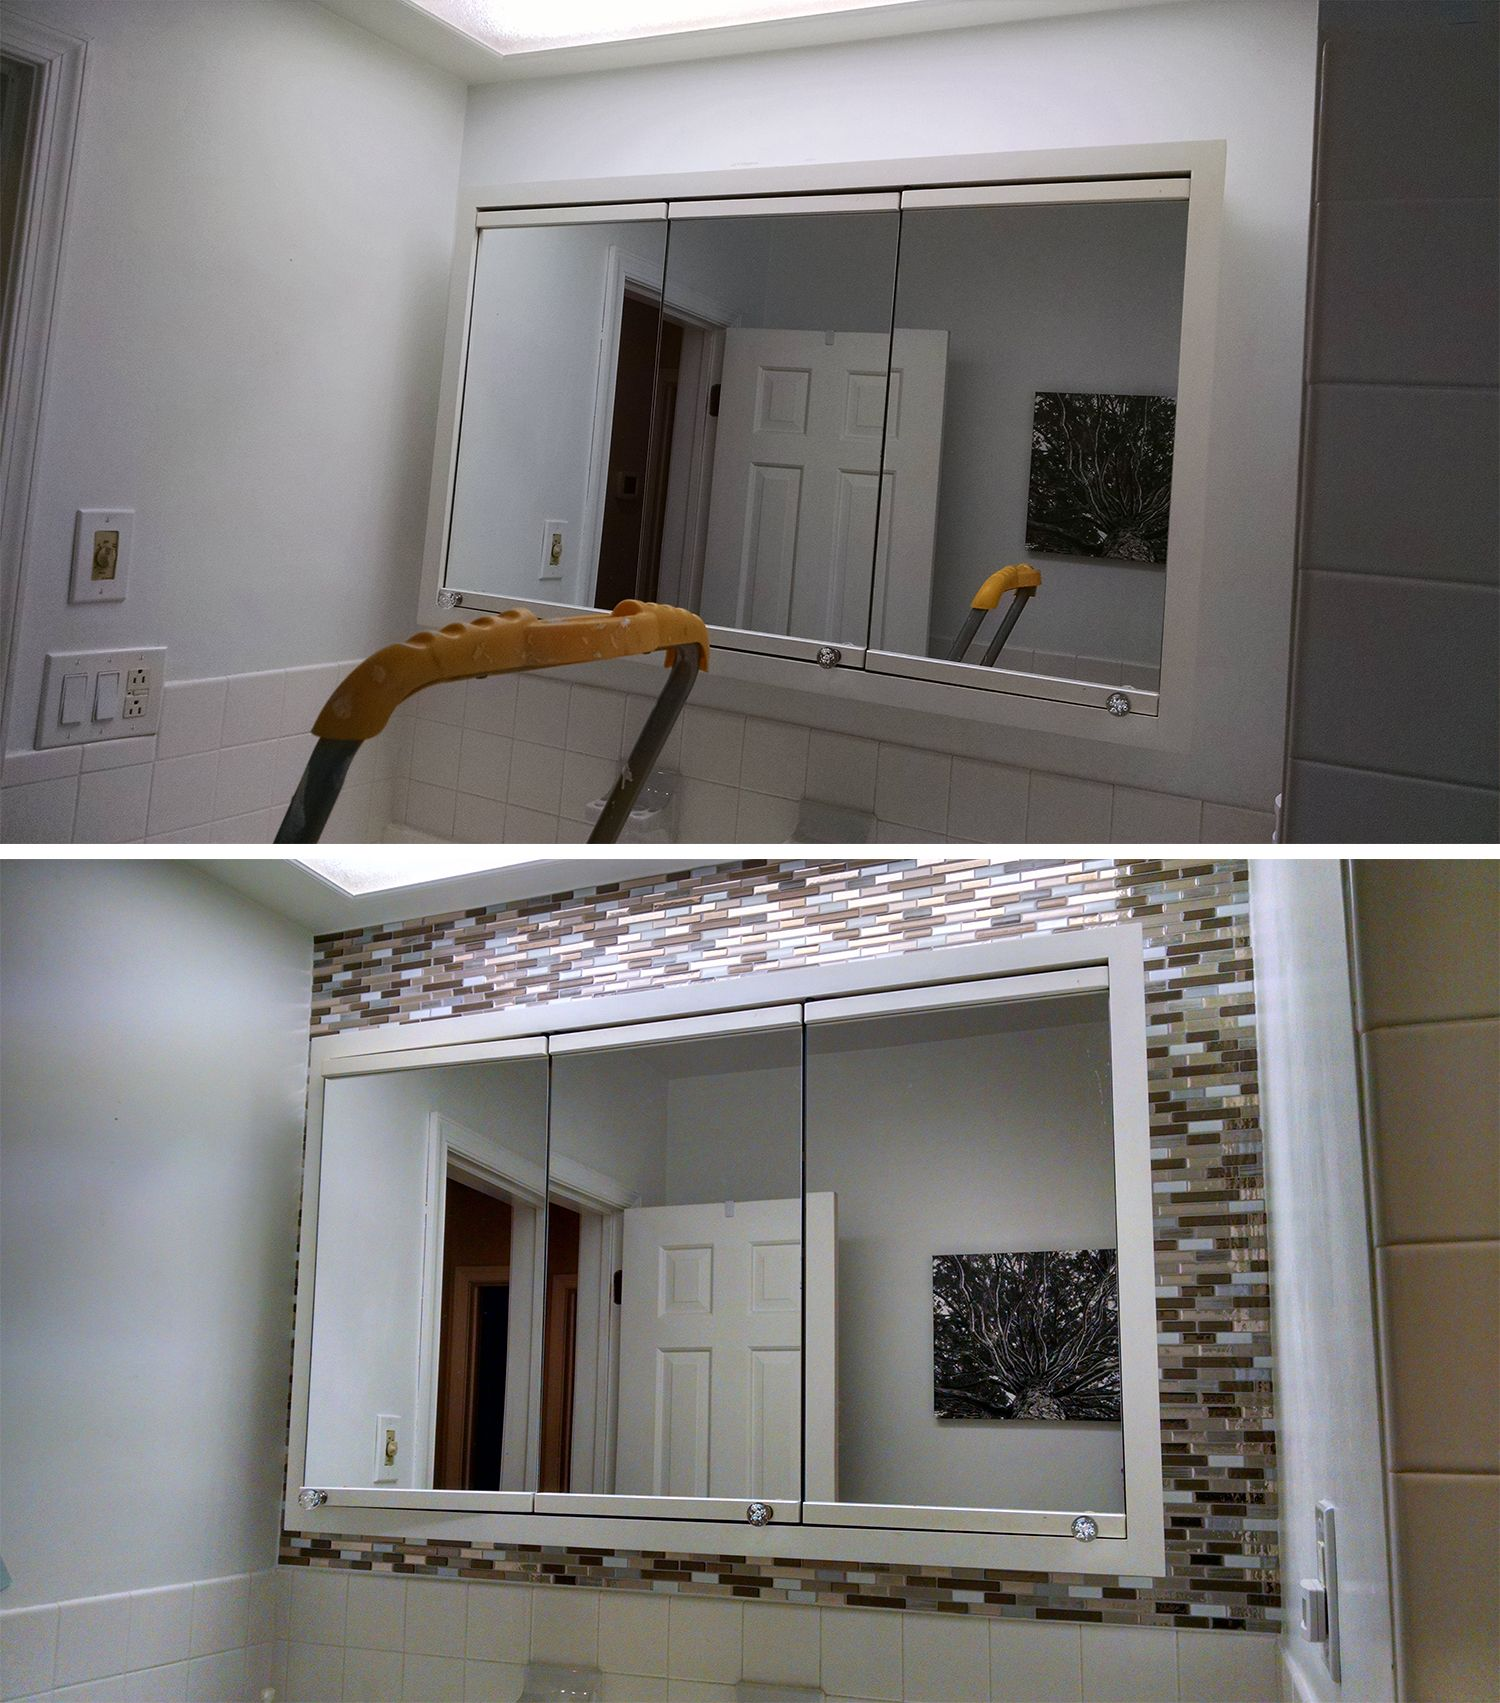 Muretto Durango Peel And Stick Tile Before And After Around Bath Vanity Smart Tiles Mosaic Decor Mosaic Wall Tiles